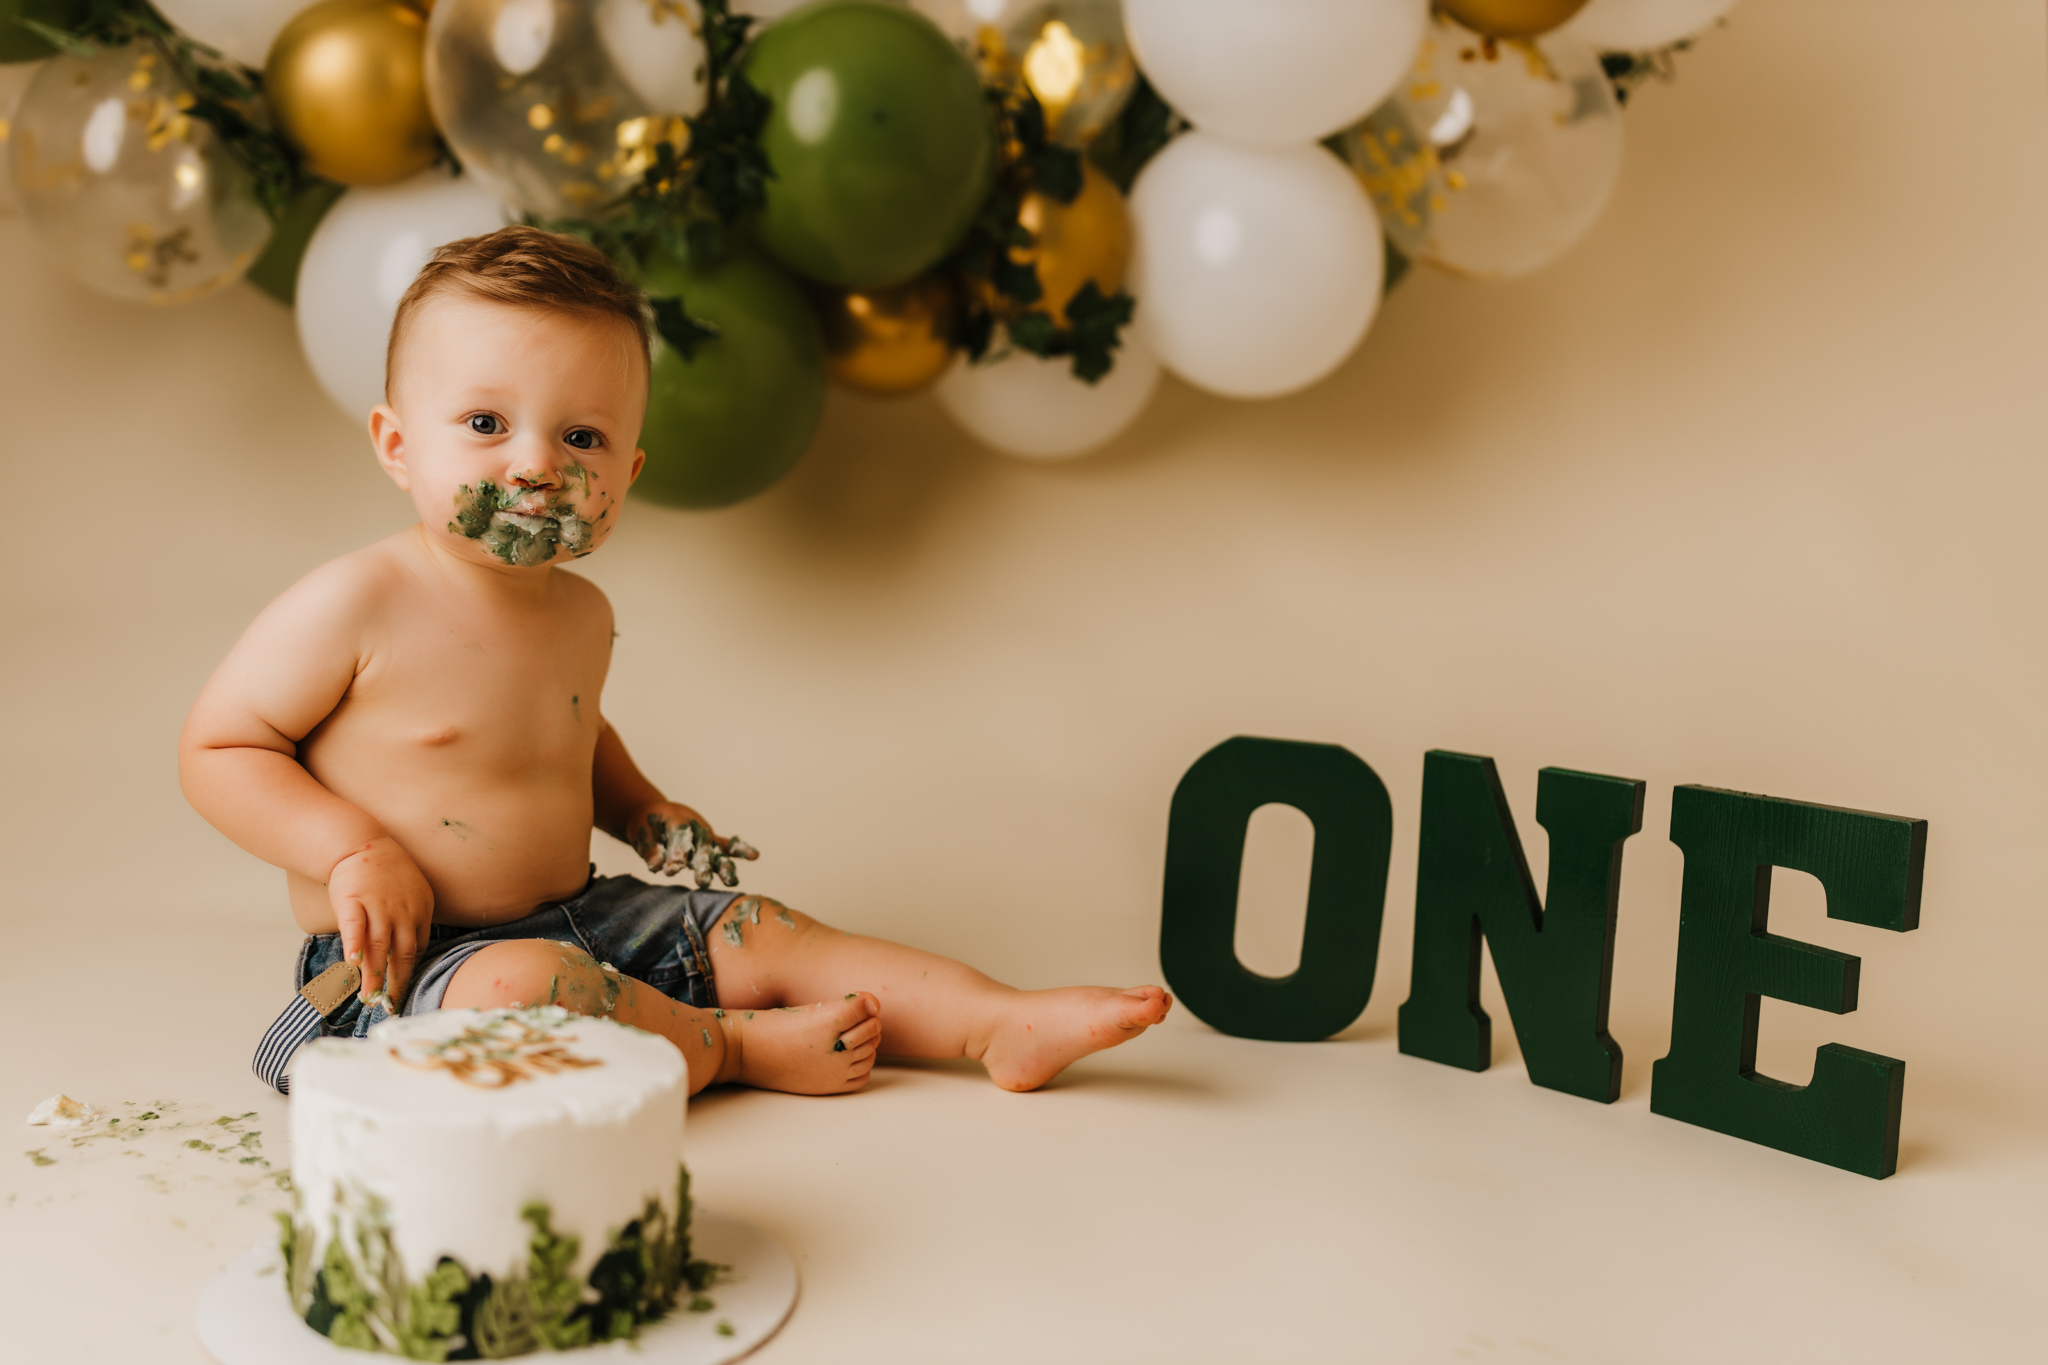 one year old enjoying his cake in studio on a cream backdrop in front of green, gold, and white balloon garland